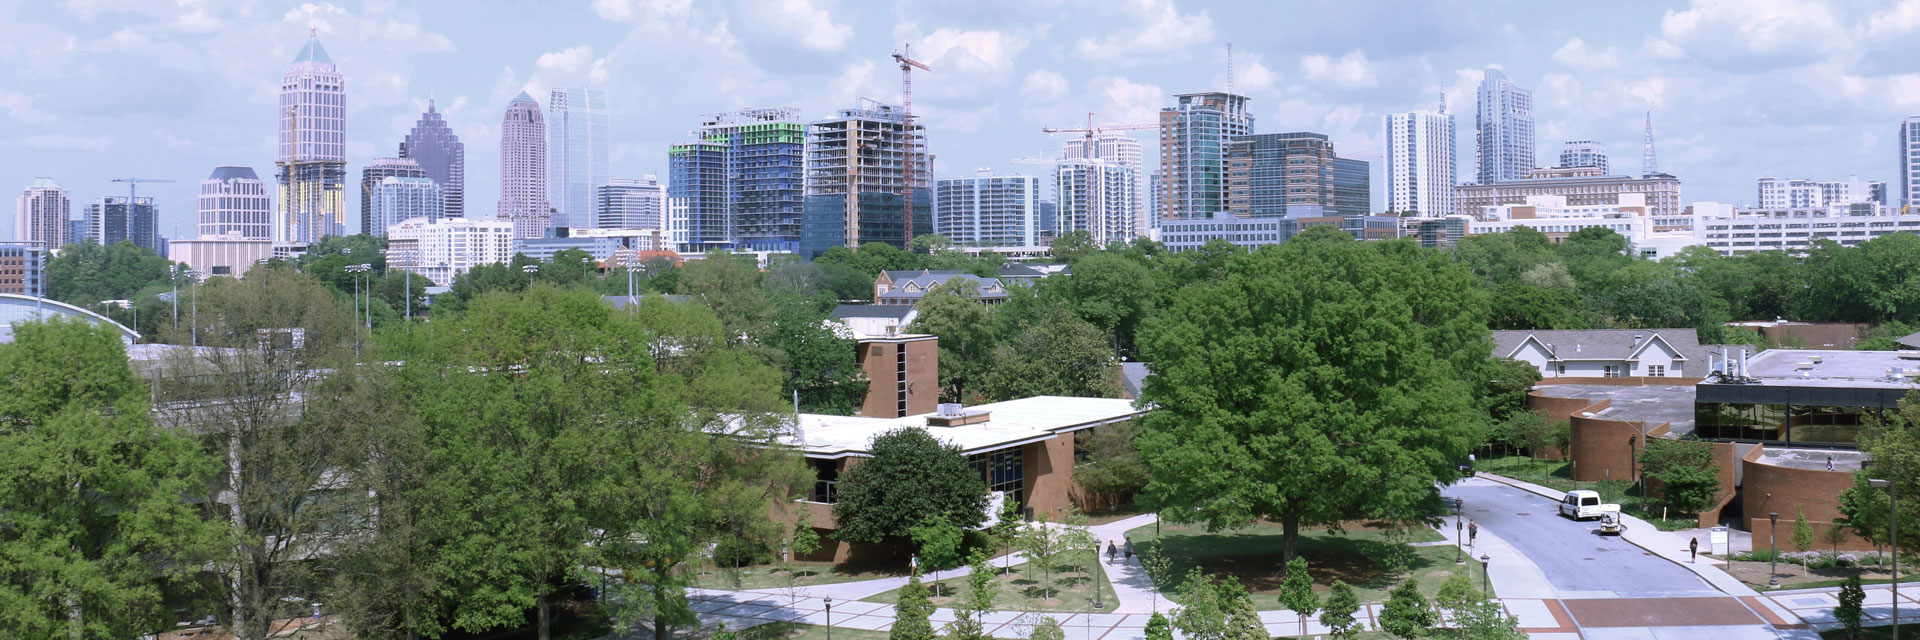 School with Atlanta skyline in the background